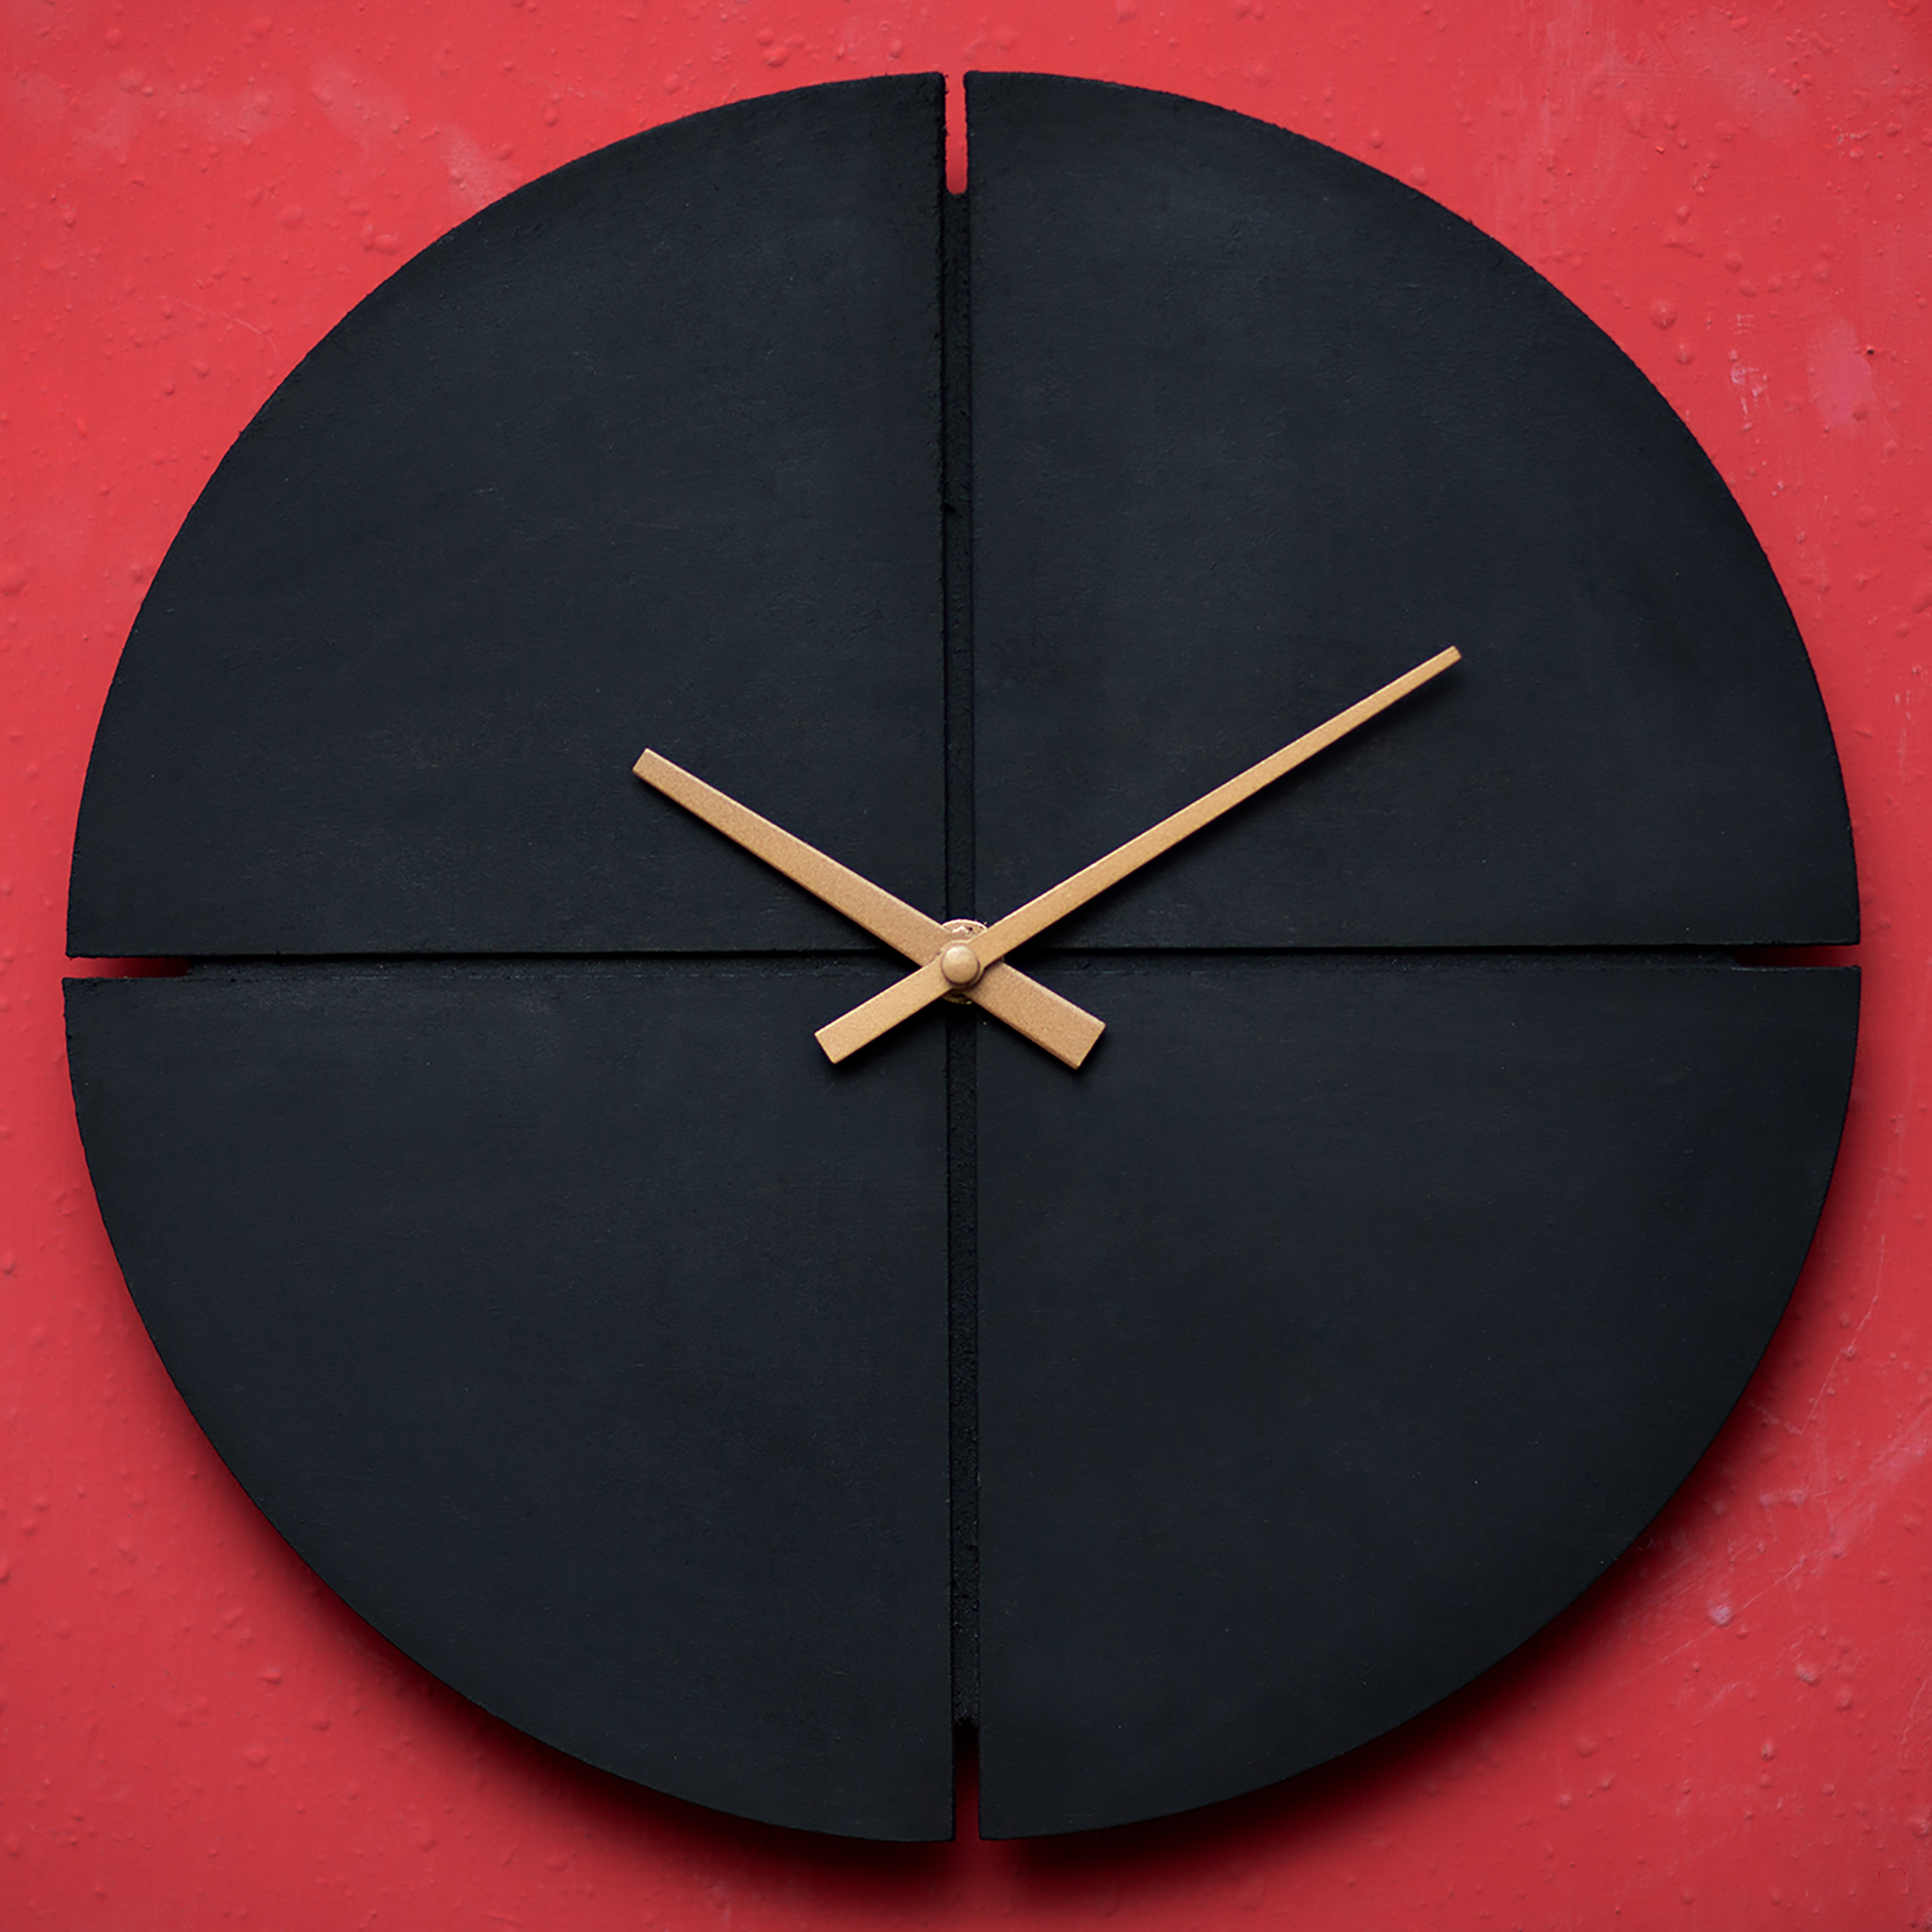 Unique Wooden Wall Clock Matte Black Wooden Wall Clock Hanging Wood Wall Clocks for Home Decor and Interior Design